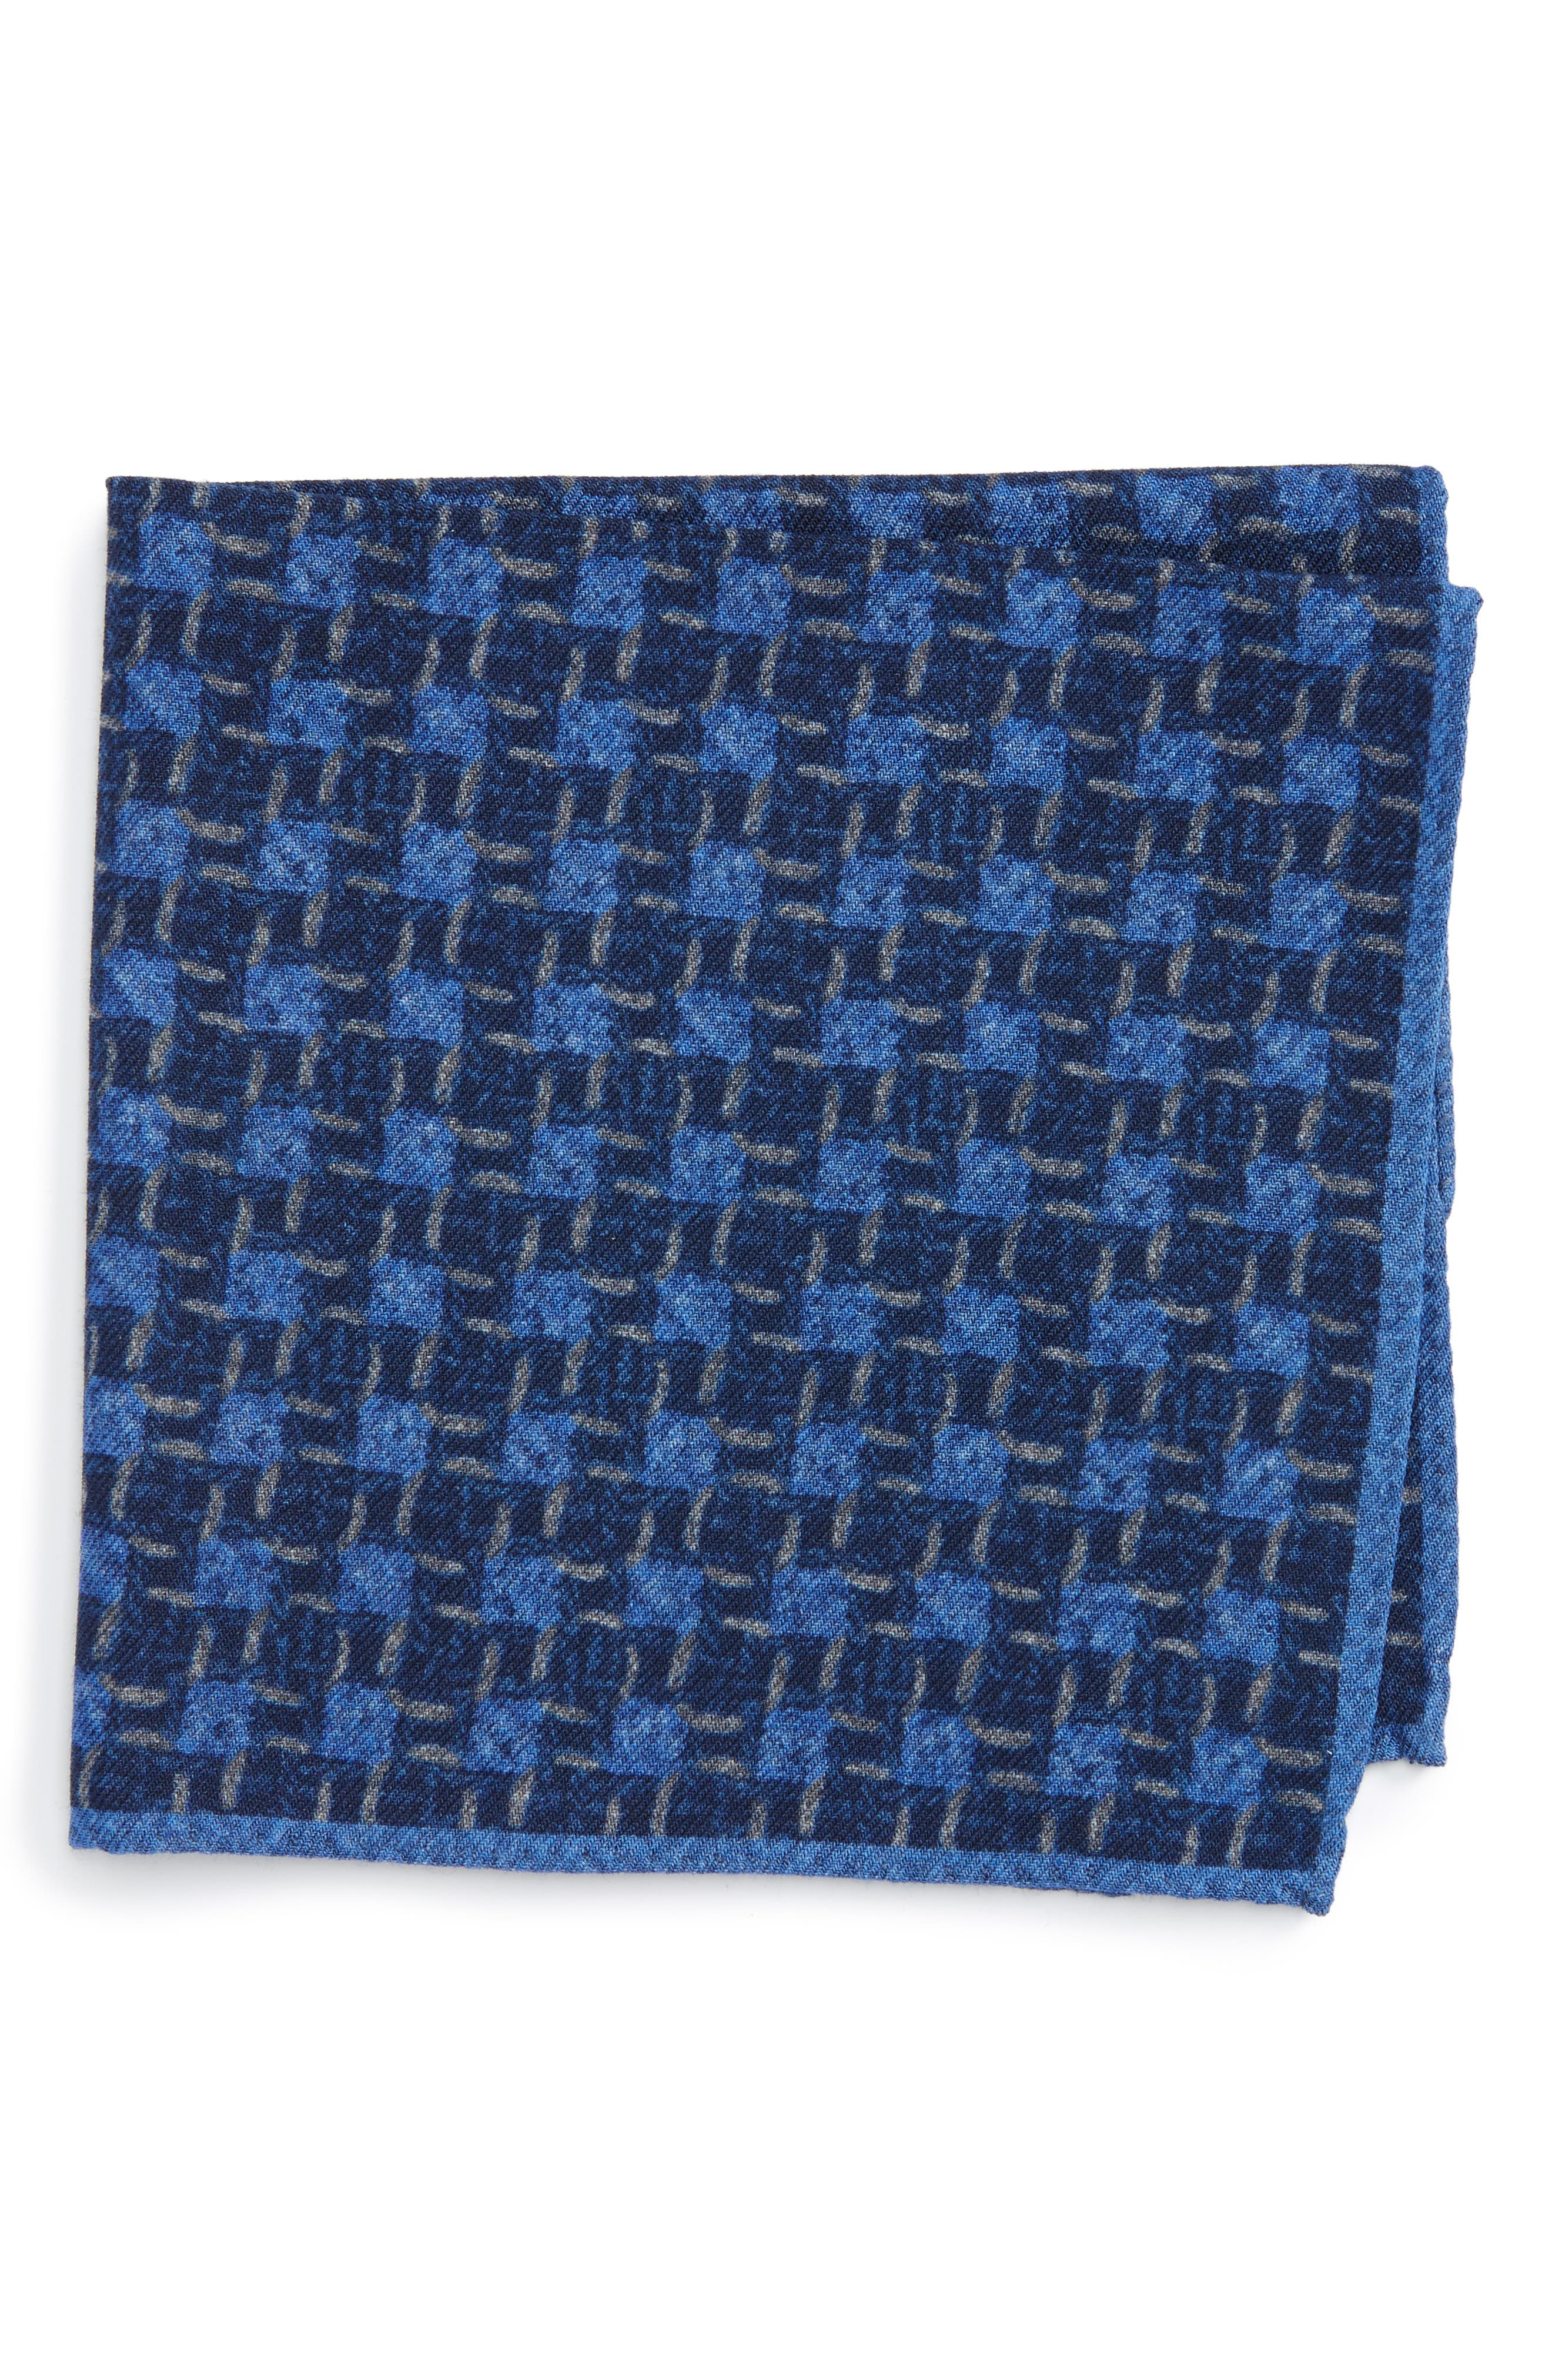 Grid Wool Pocket Square,                         Main,                         color, Navy